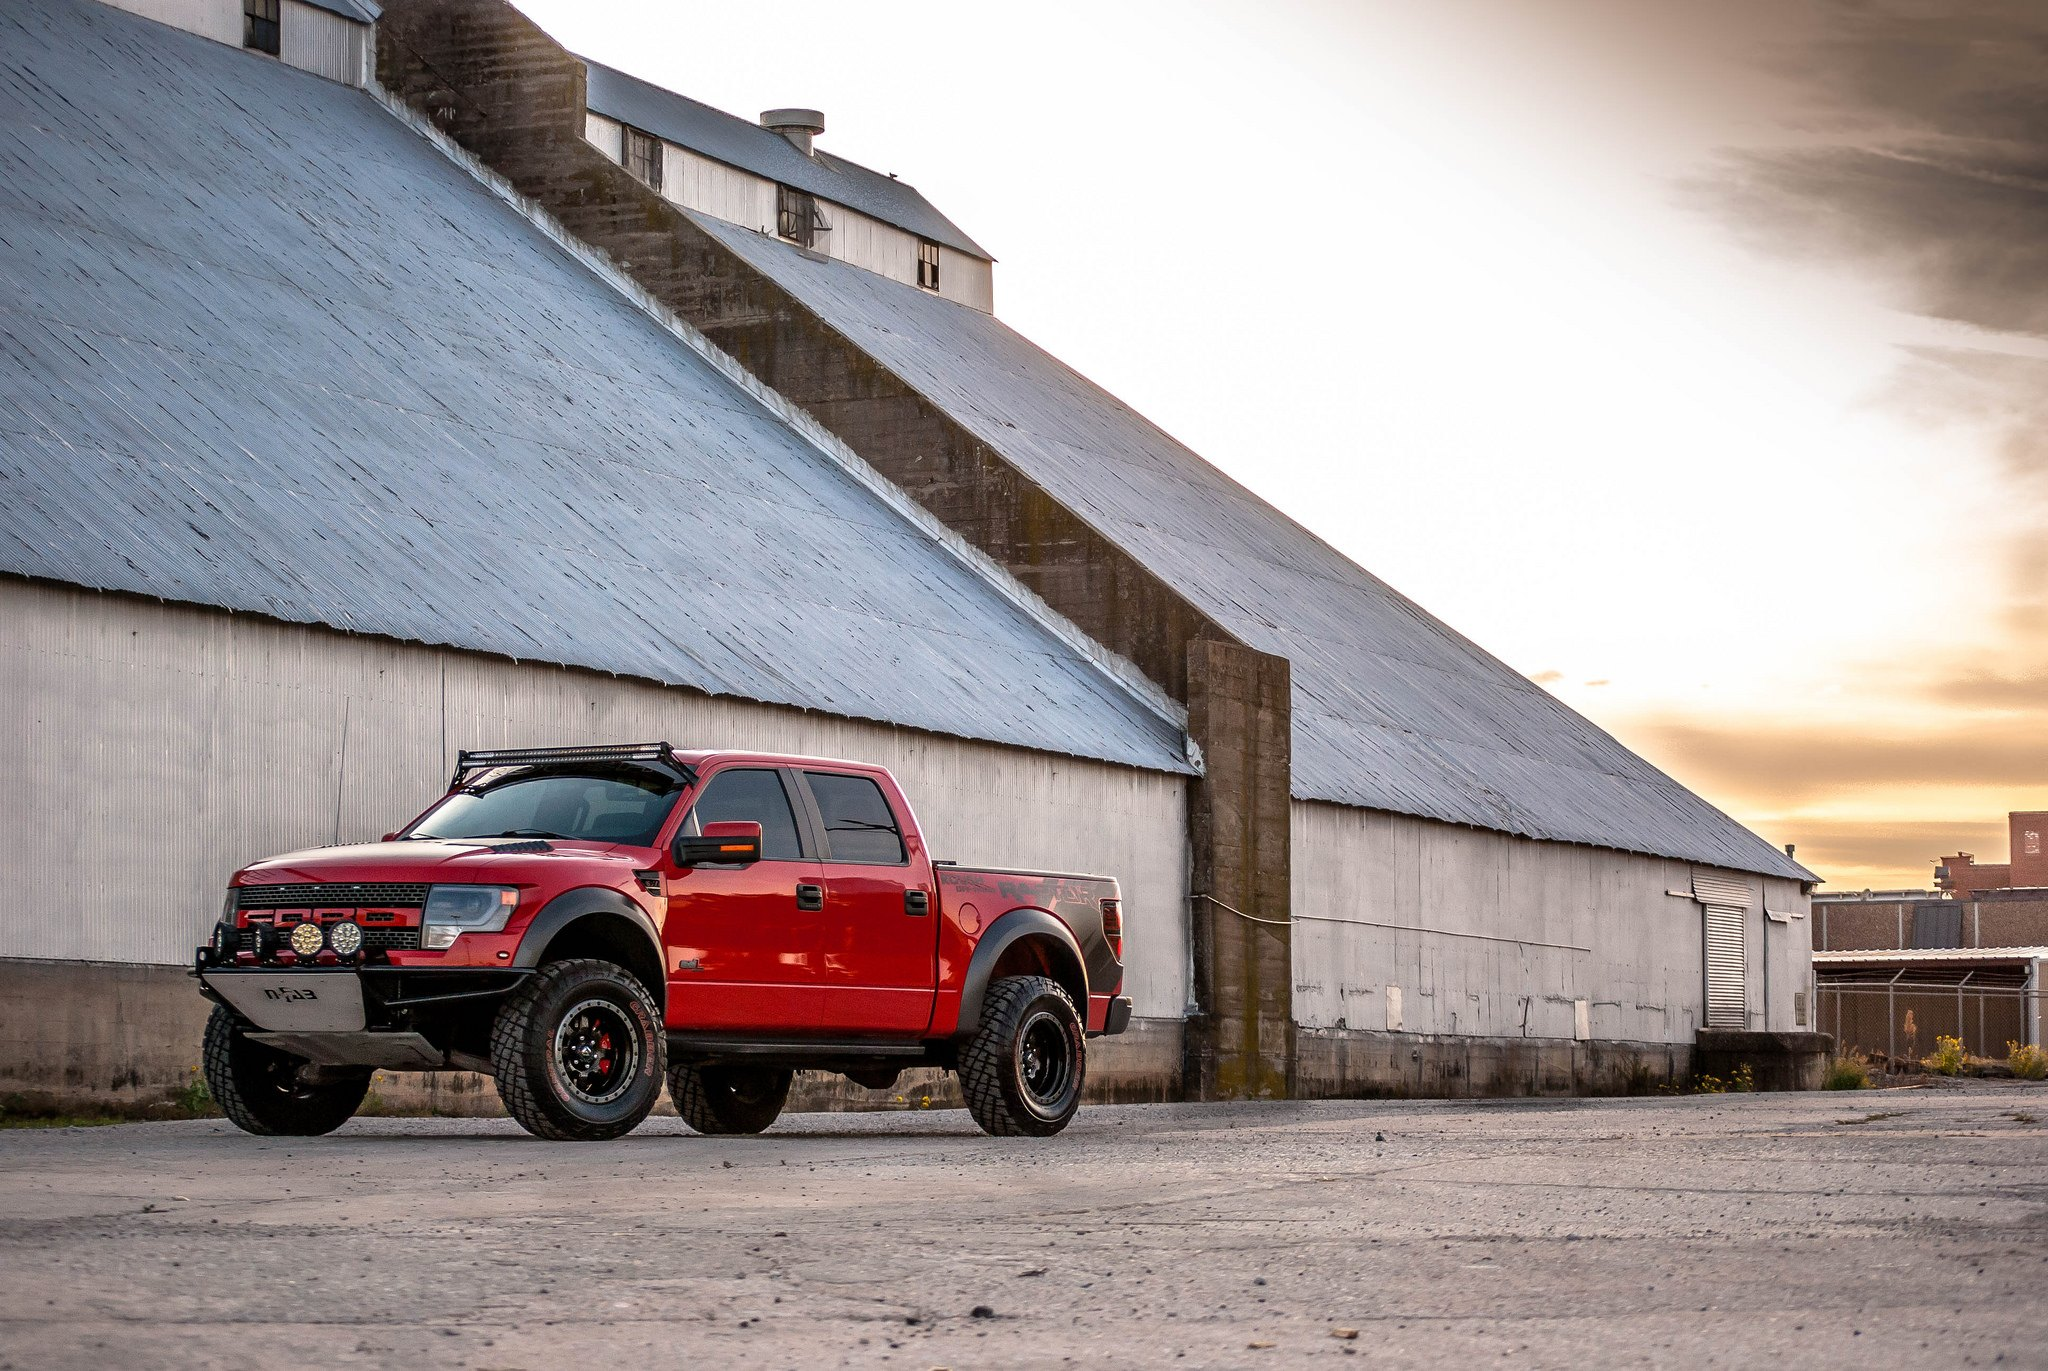 Custom Black Fuel Offroad Wheels on Red Ford F-150 - Photo by Fuel Offroad